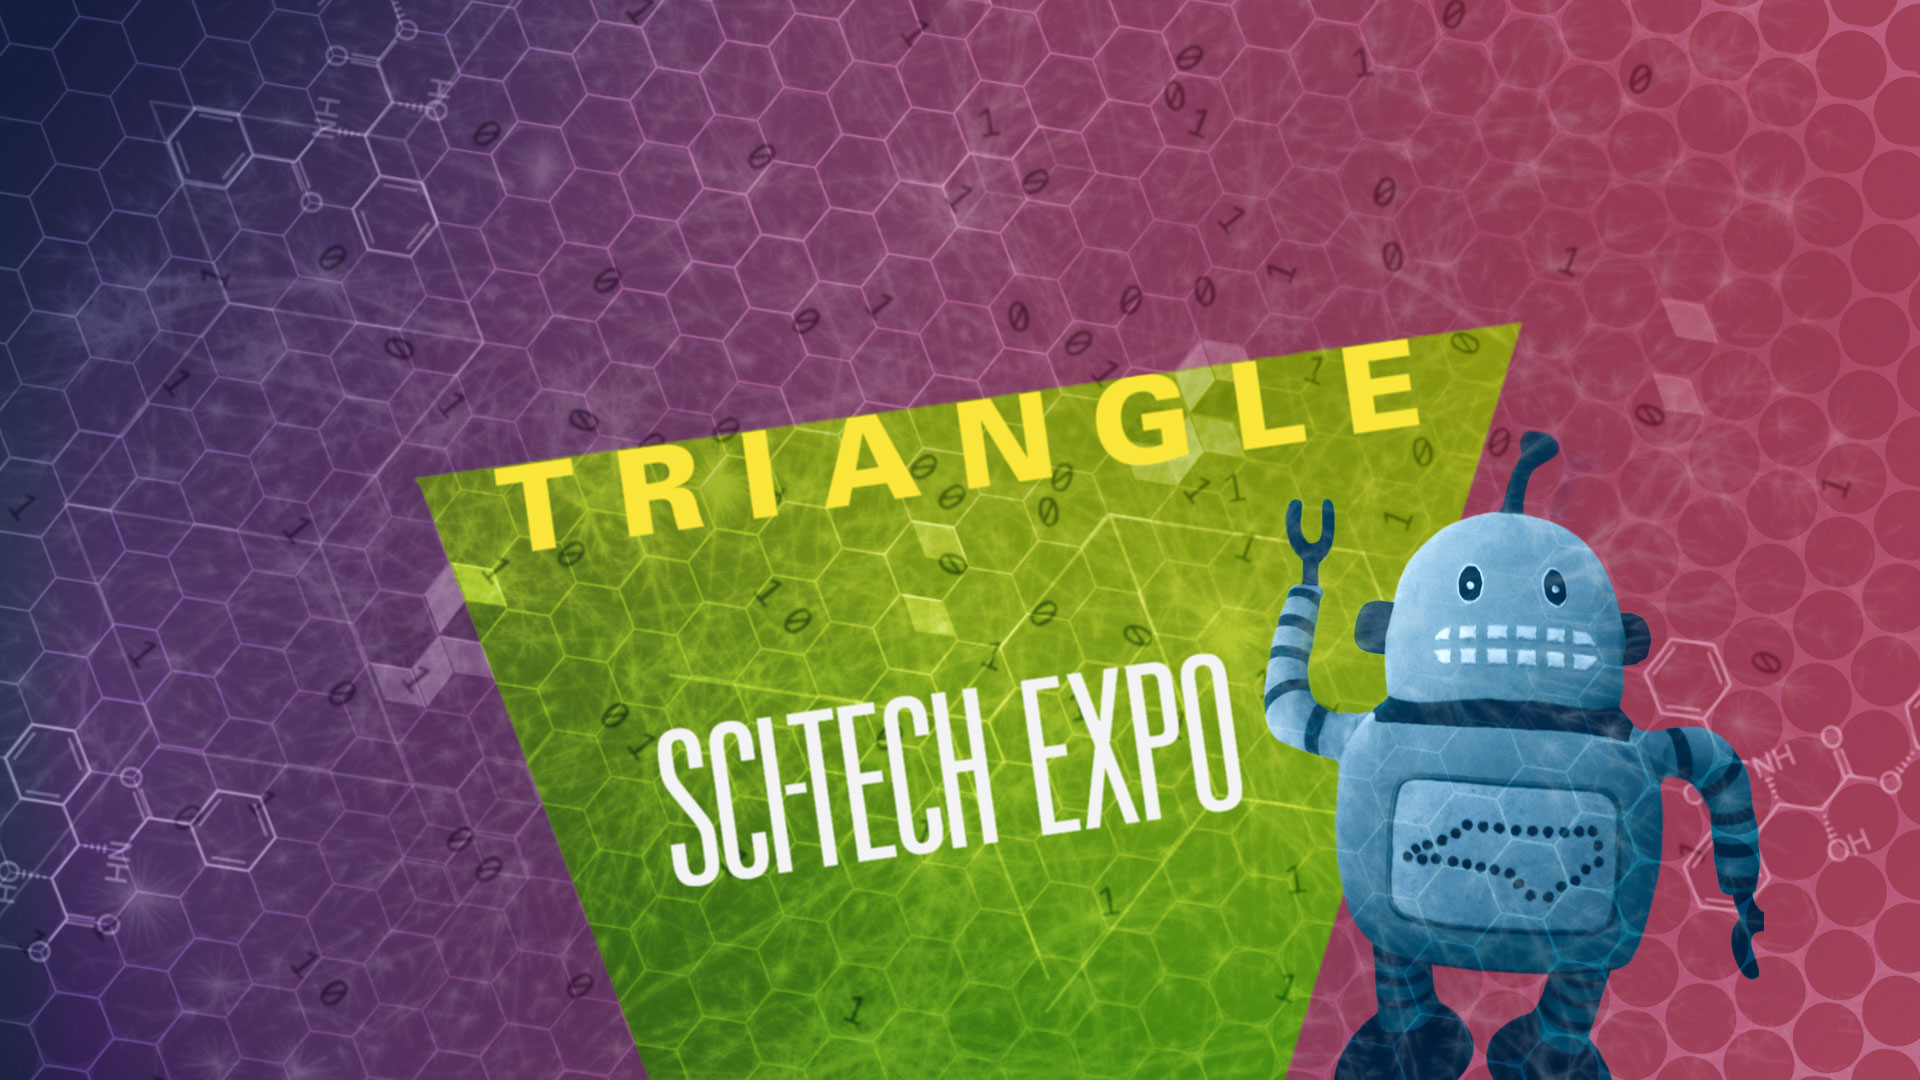 Triangle Sci-Tech Expo April 28